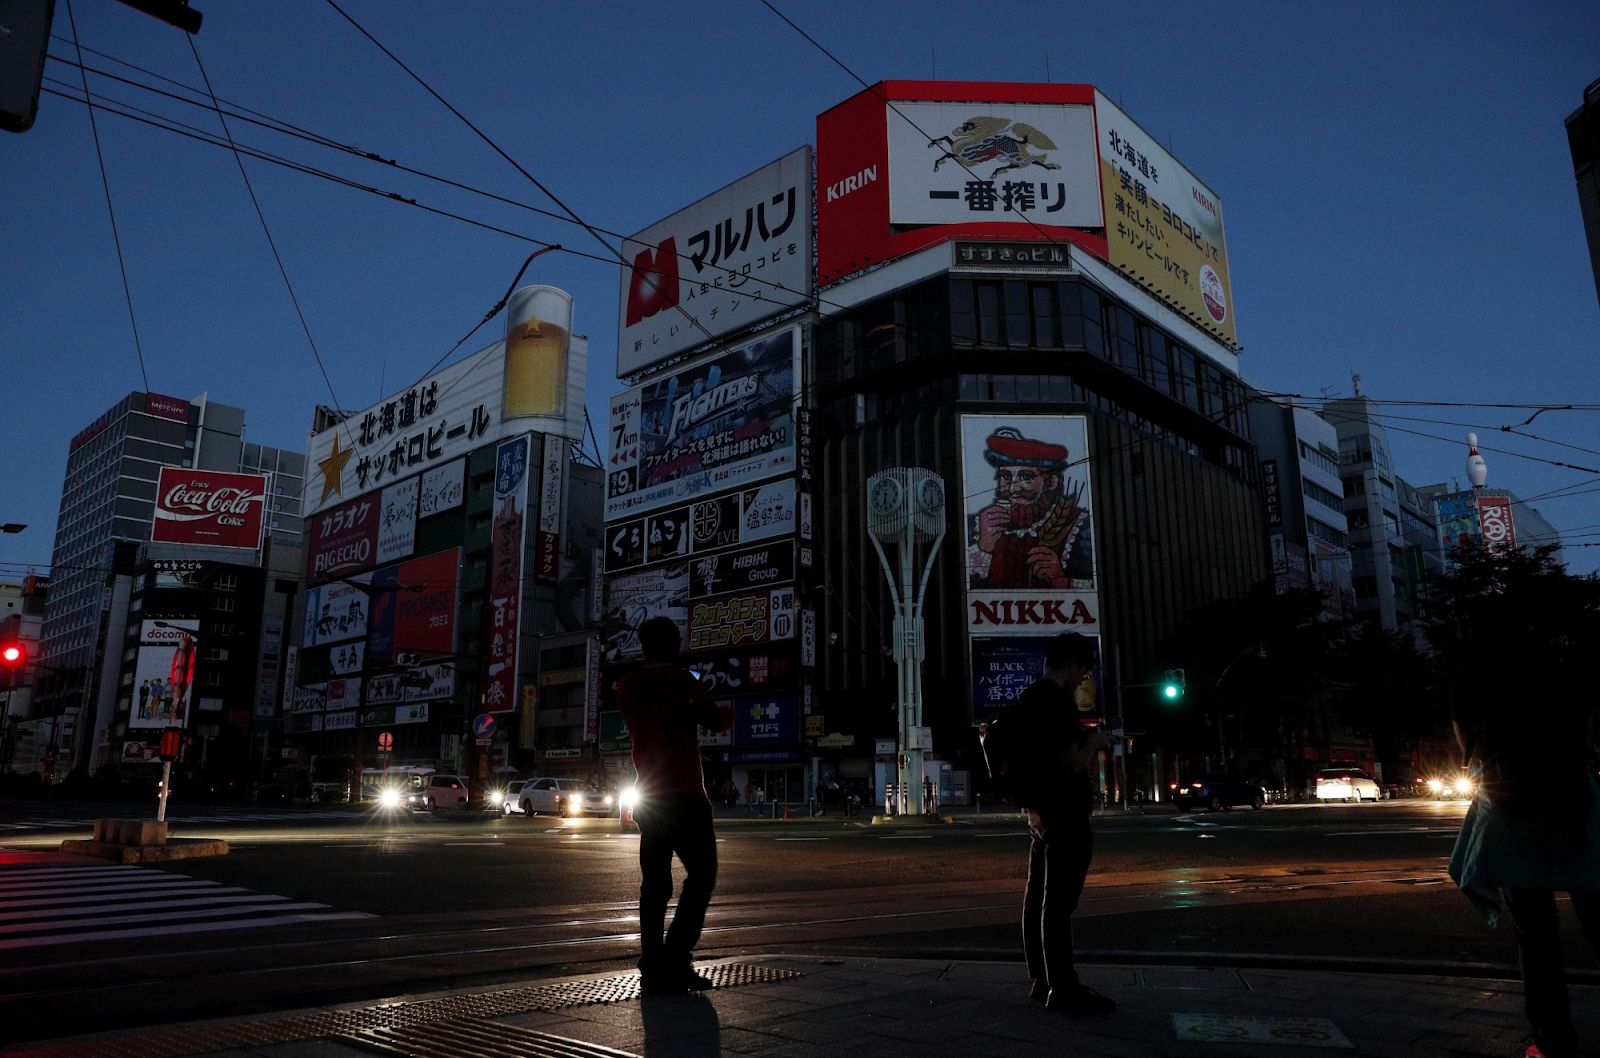 [Photo: The usually-bright neon lights of the advertisements on the buildings in Sapporo City's Susukino entertainment district were darkened on the night of Sept. 6 as Hokkaido faced an island-wide blackout. Photo:  Kyodo ]